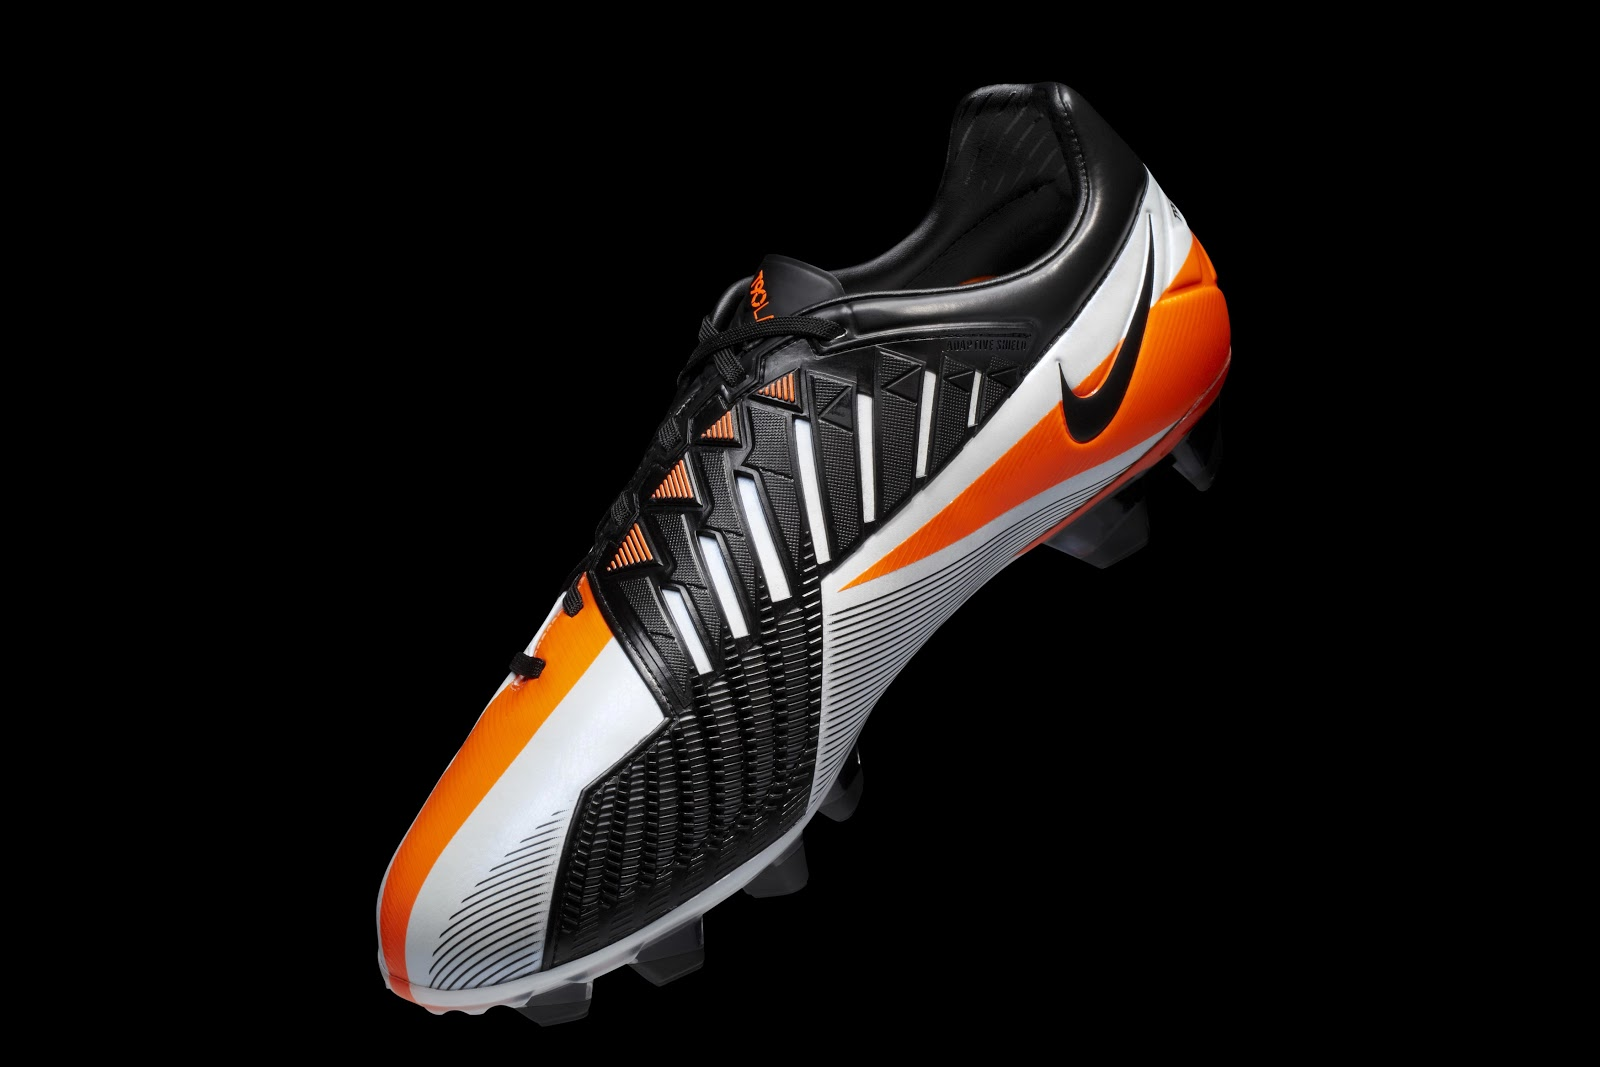 60ad9caf0b41 The Nike Total 90 Laser IV football boot was released in September 2011.  Made for ultimate power and shooting accuracy and headlined by Wayne  Rooney